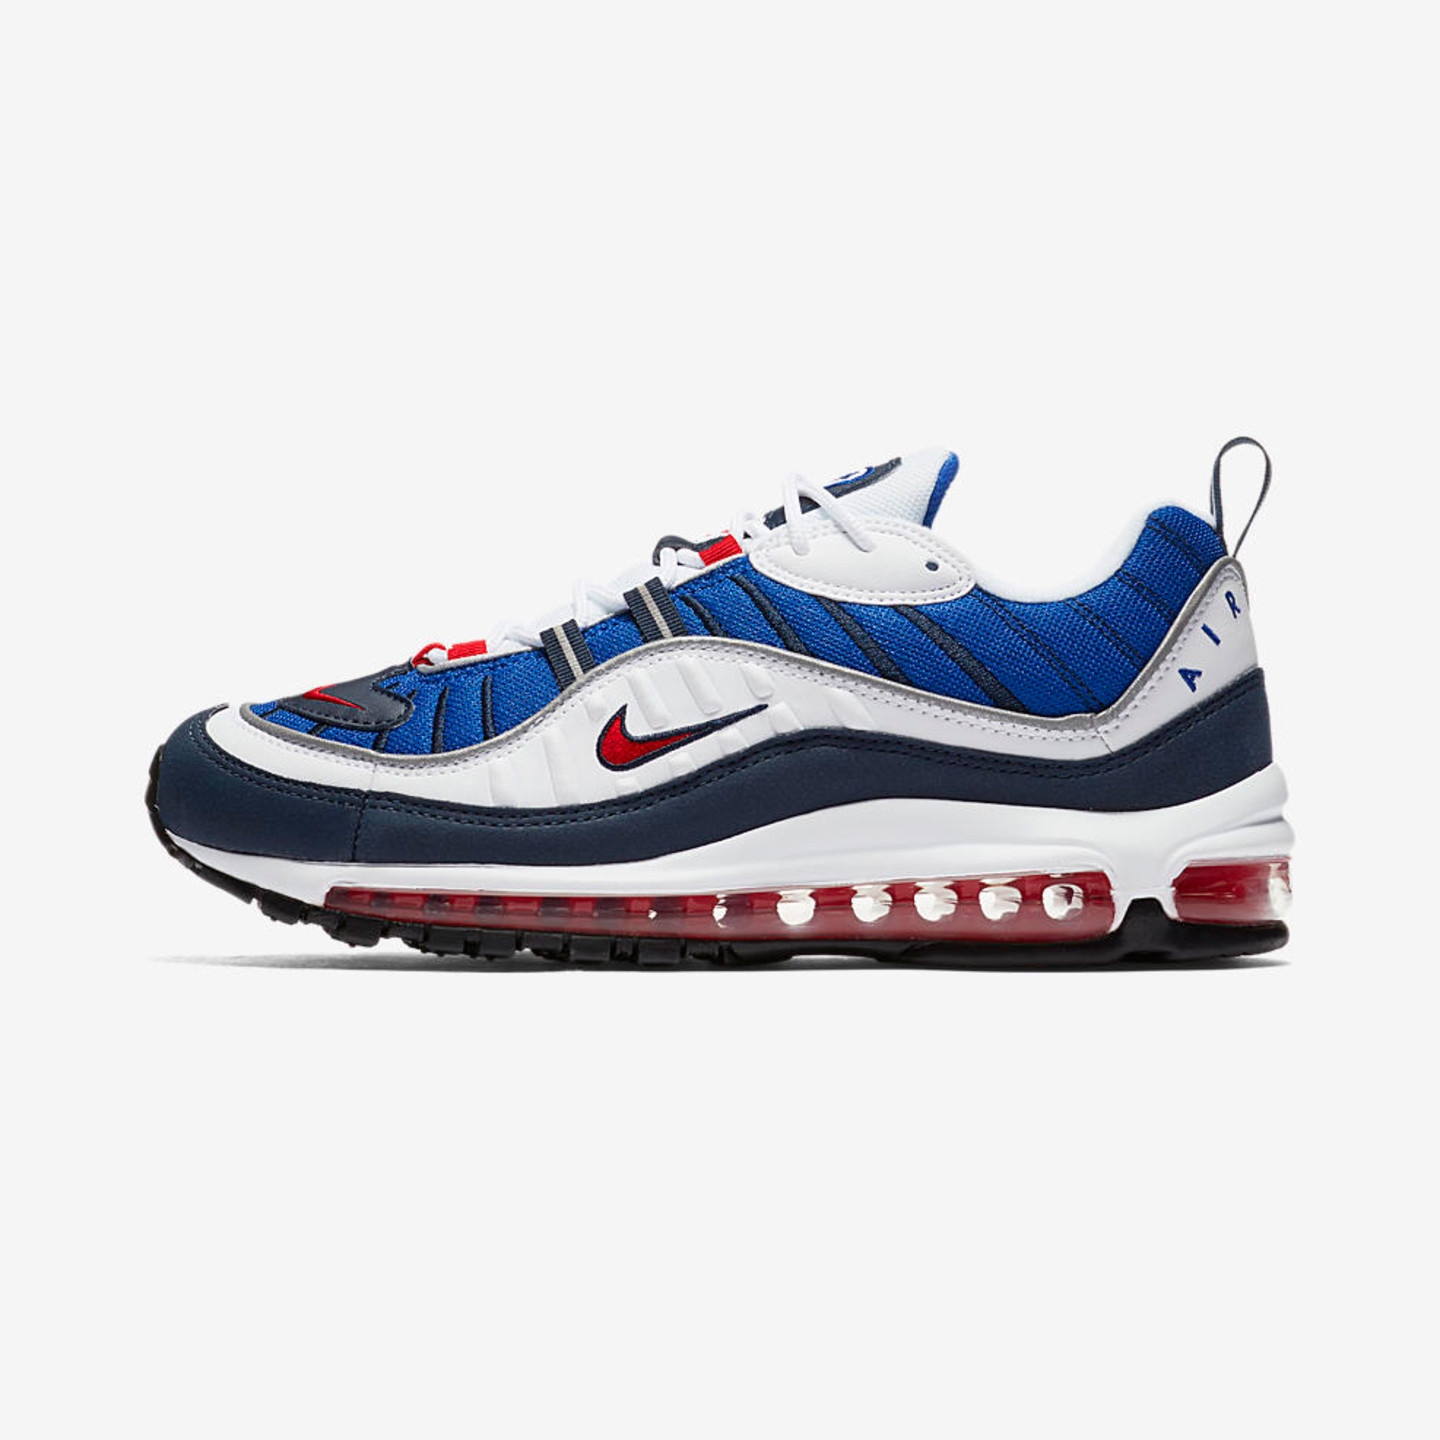 Nike Air Max 98 OG 'Gundam' White / University Red / Obsidian 640744-100